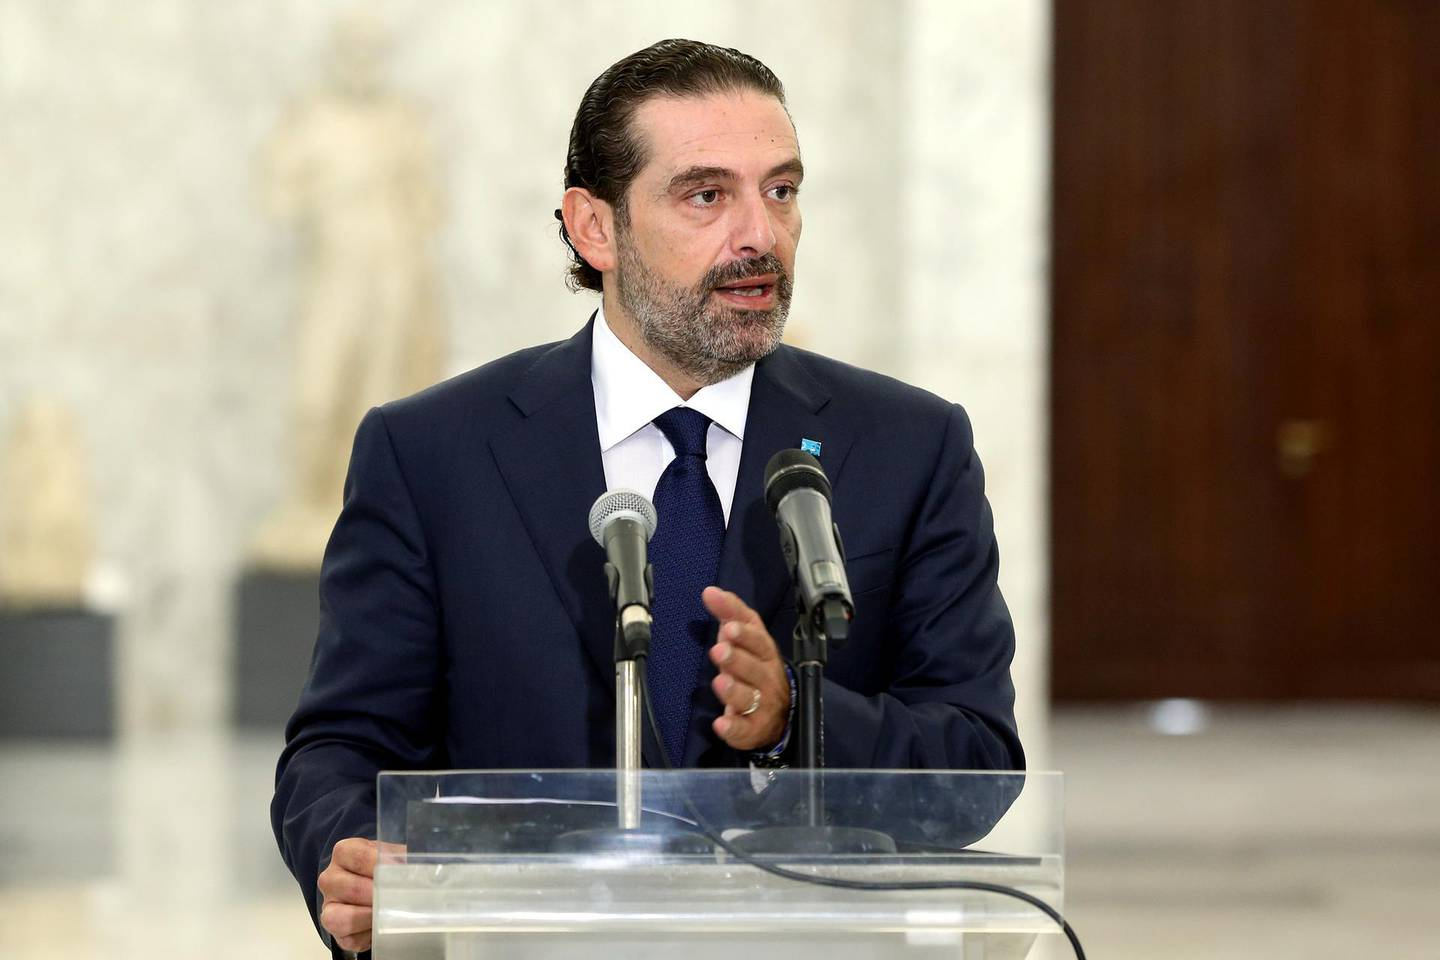 Former Prime Minister Saad al-Hariri speaks at the presidential palace in Baabda, Lebanon October 12, 2020. Dalati Nohra/Handout via REUTERS ATTENTION EDITORS - THIS IMAGE WAS PROVIDED BY A THIRD PARTY